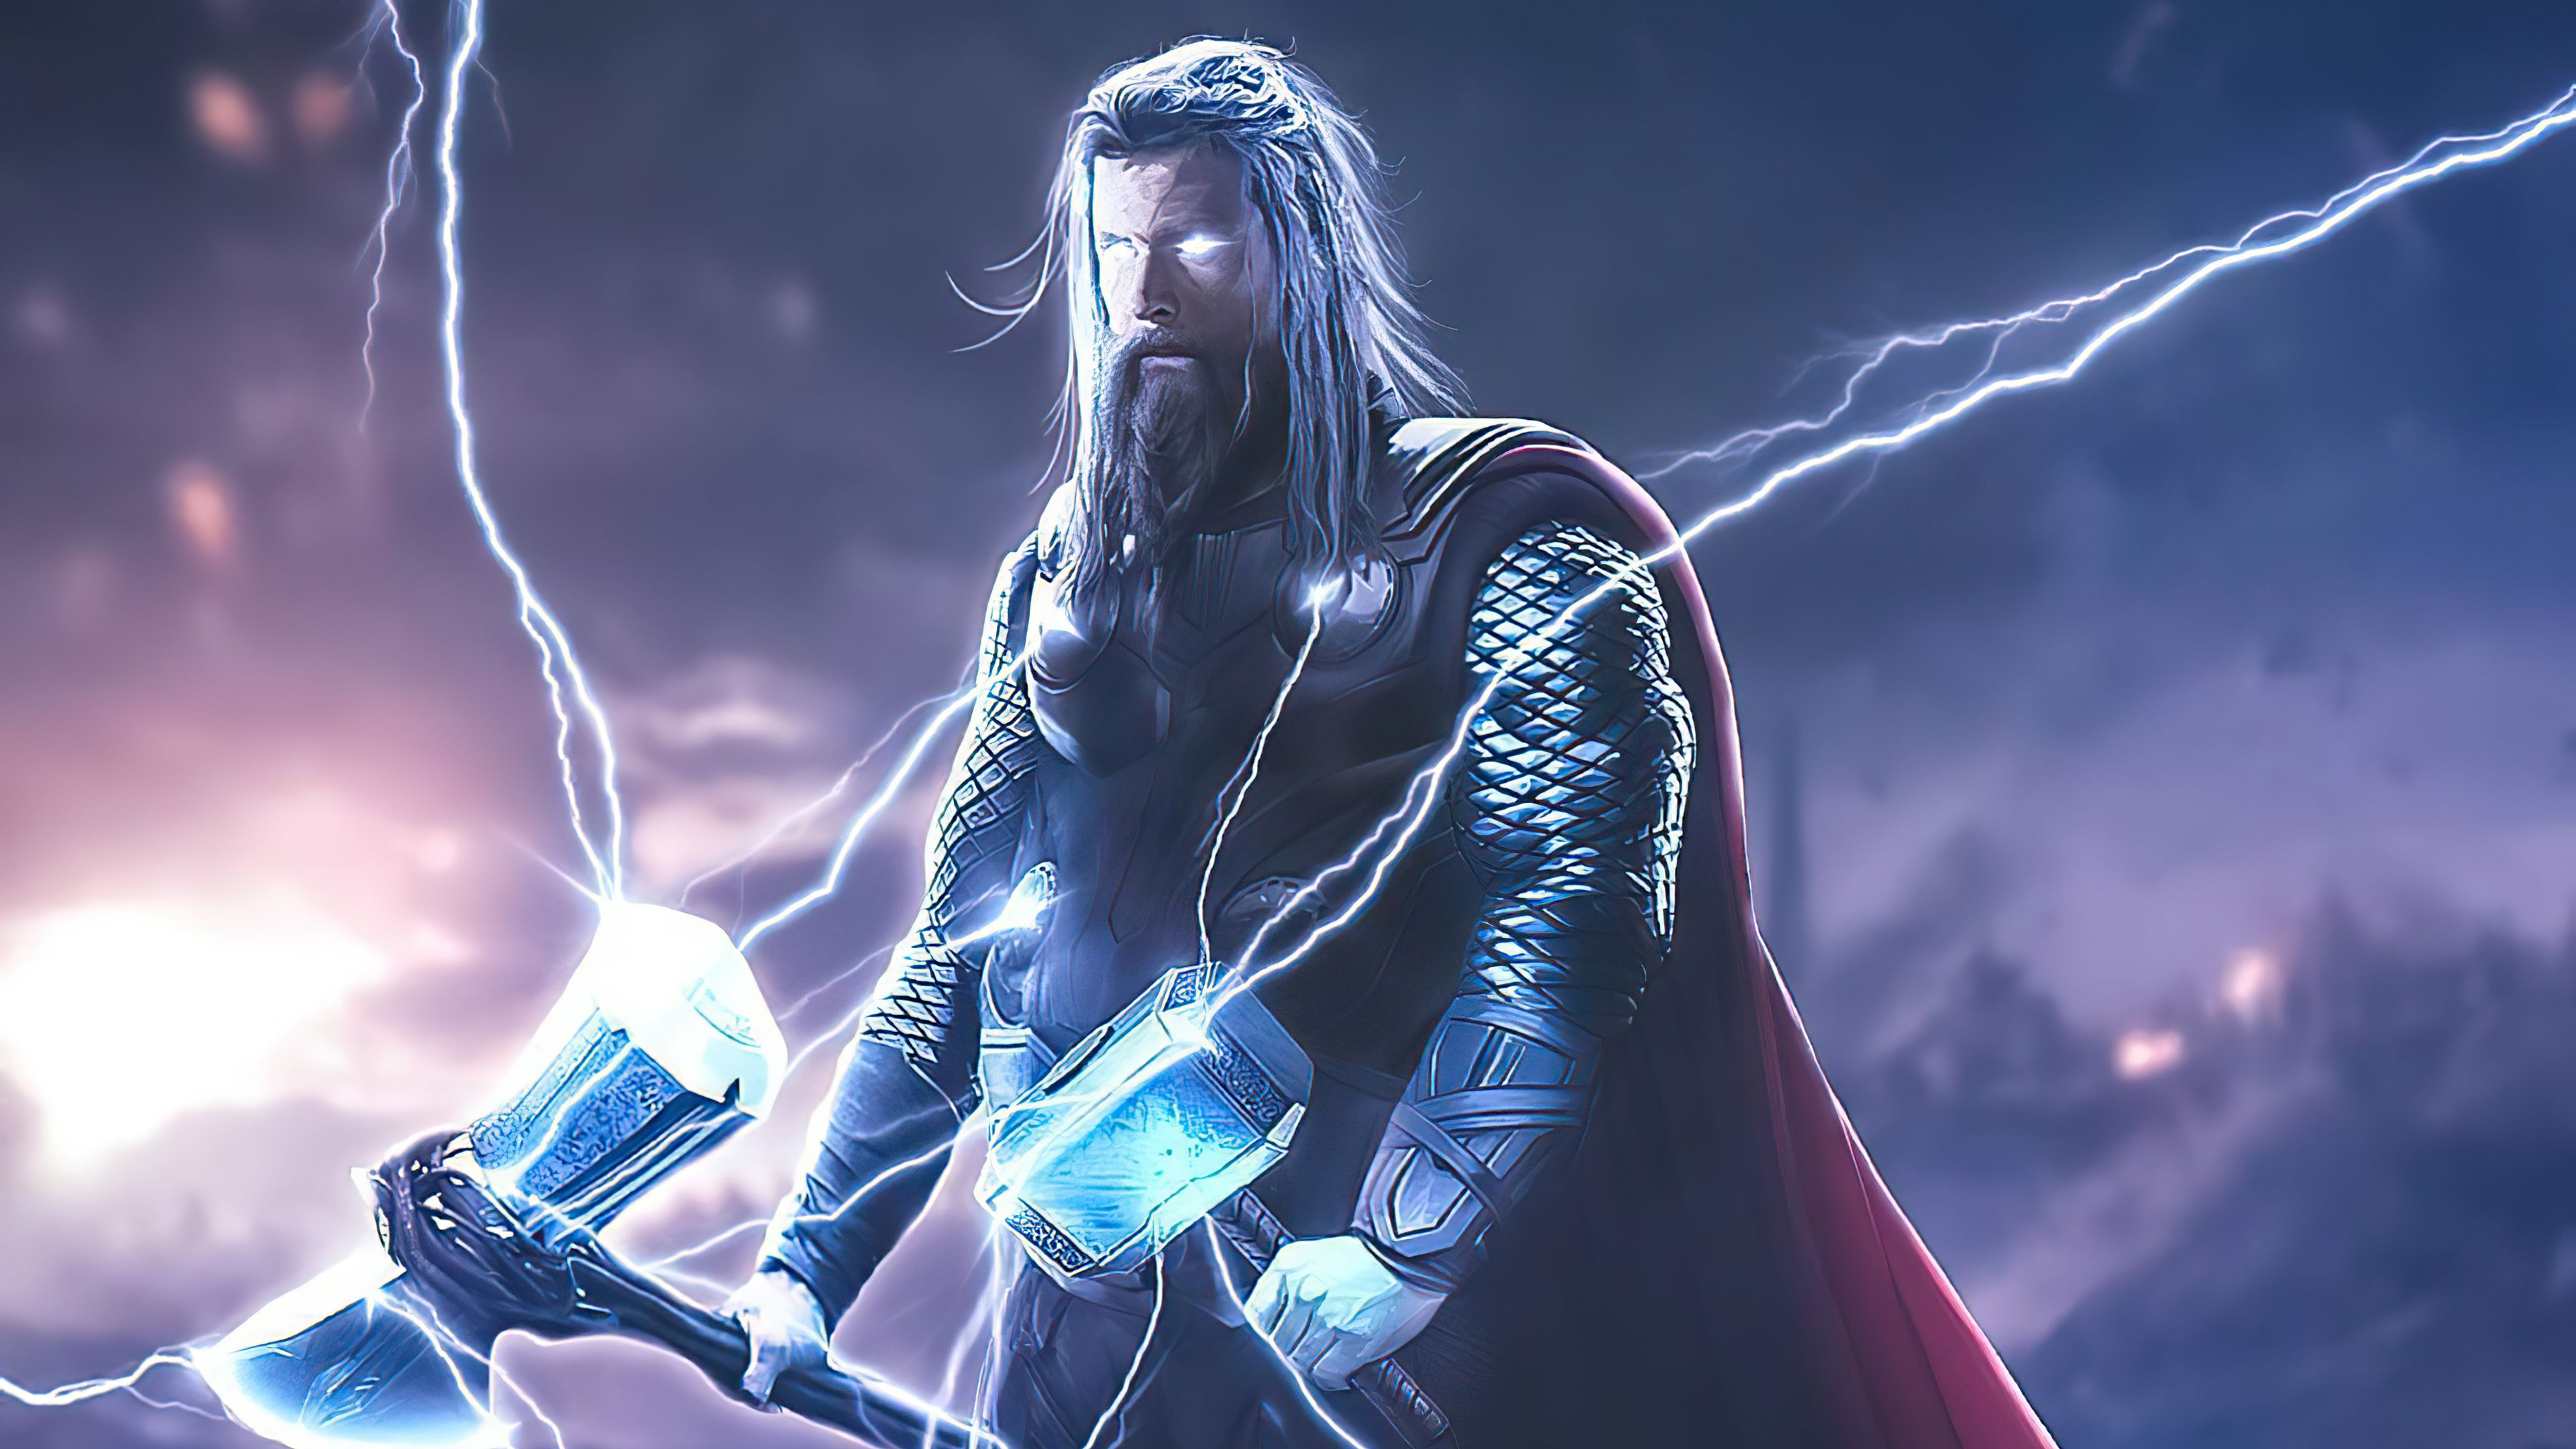 1920x1080 Thor New Hammer 4k Laptop Full HD 1080P HD 4k Wallpapers, Image, Backgrounds, Photos and Pictures